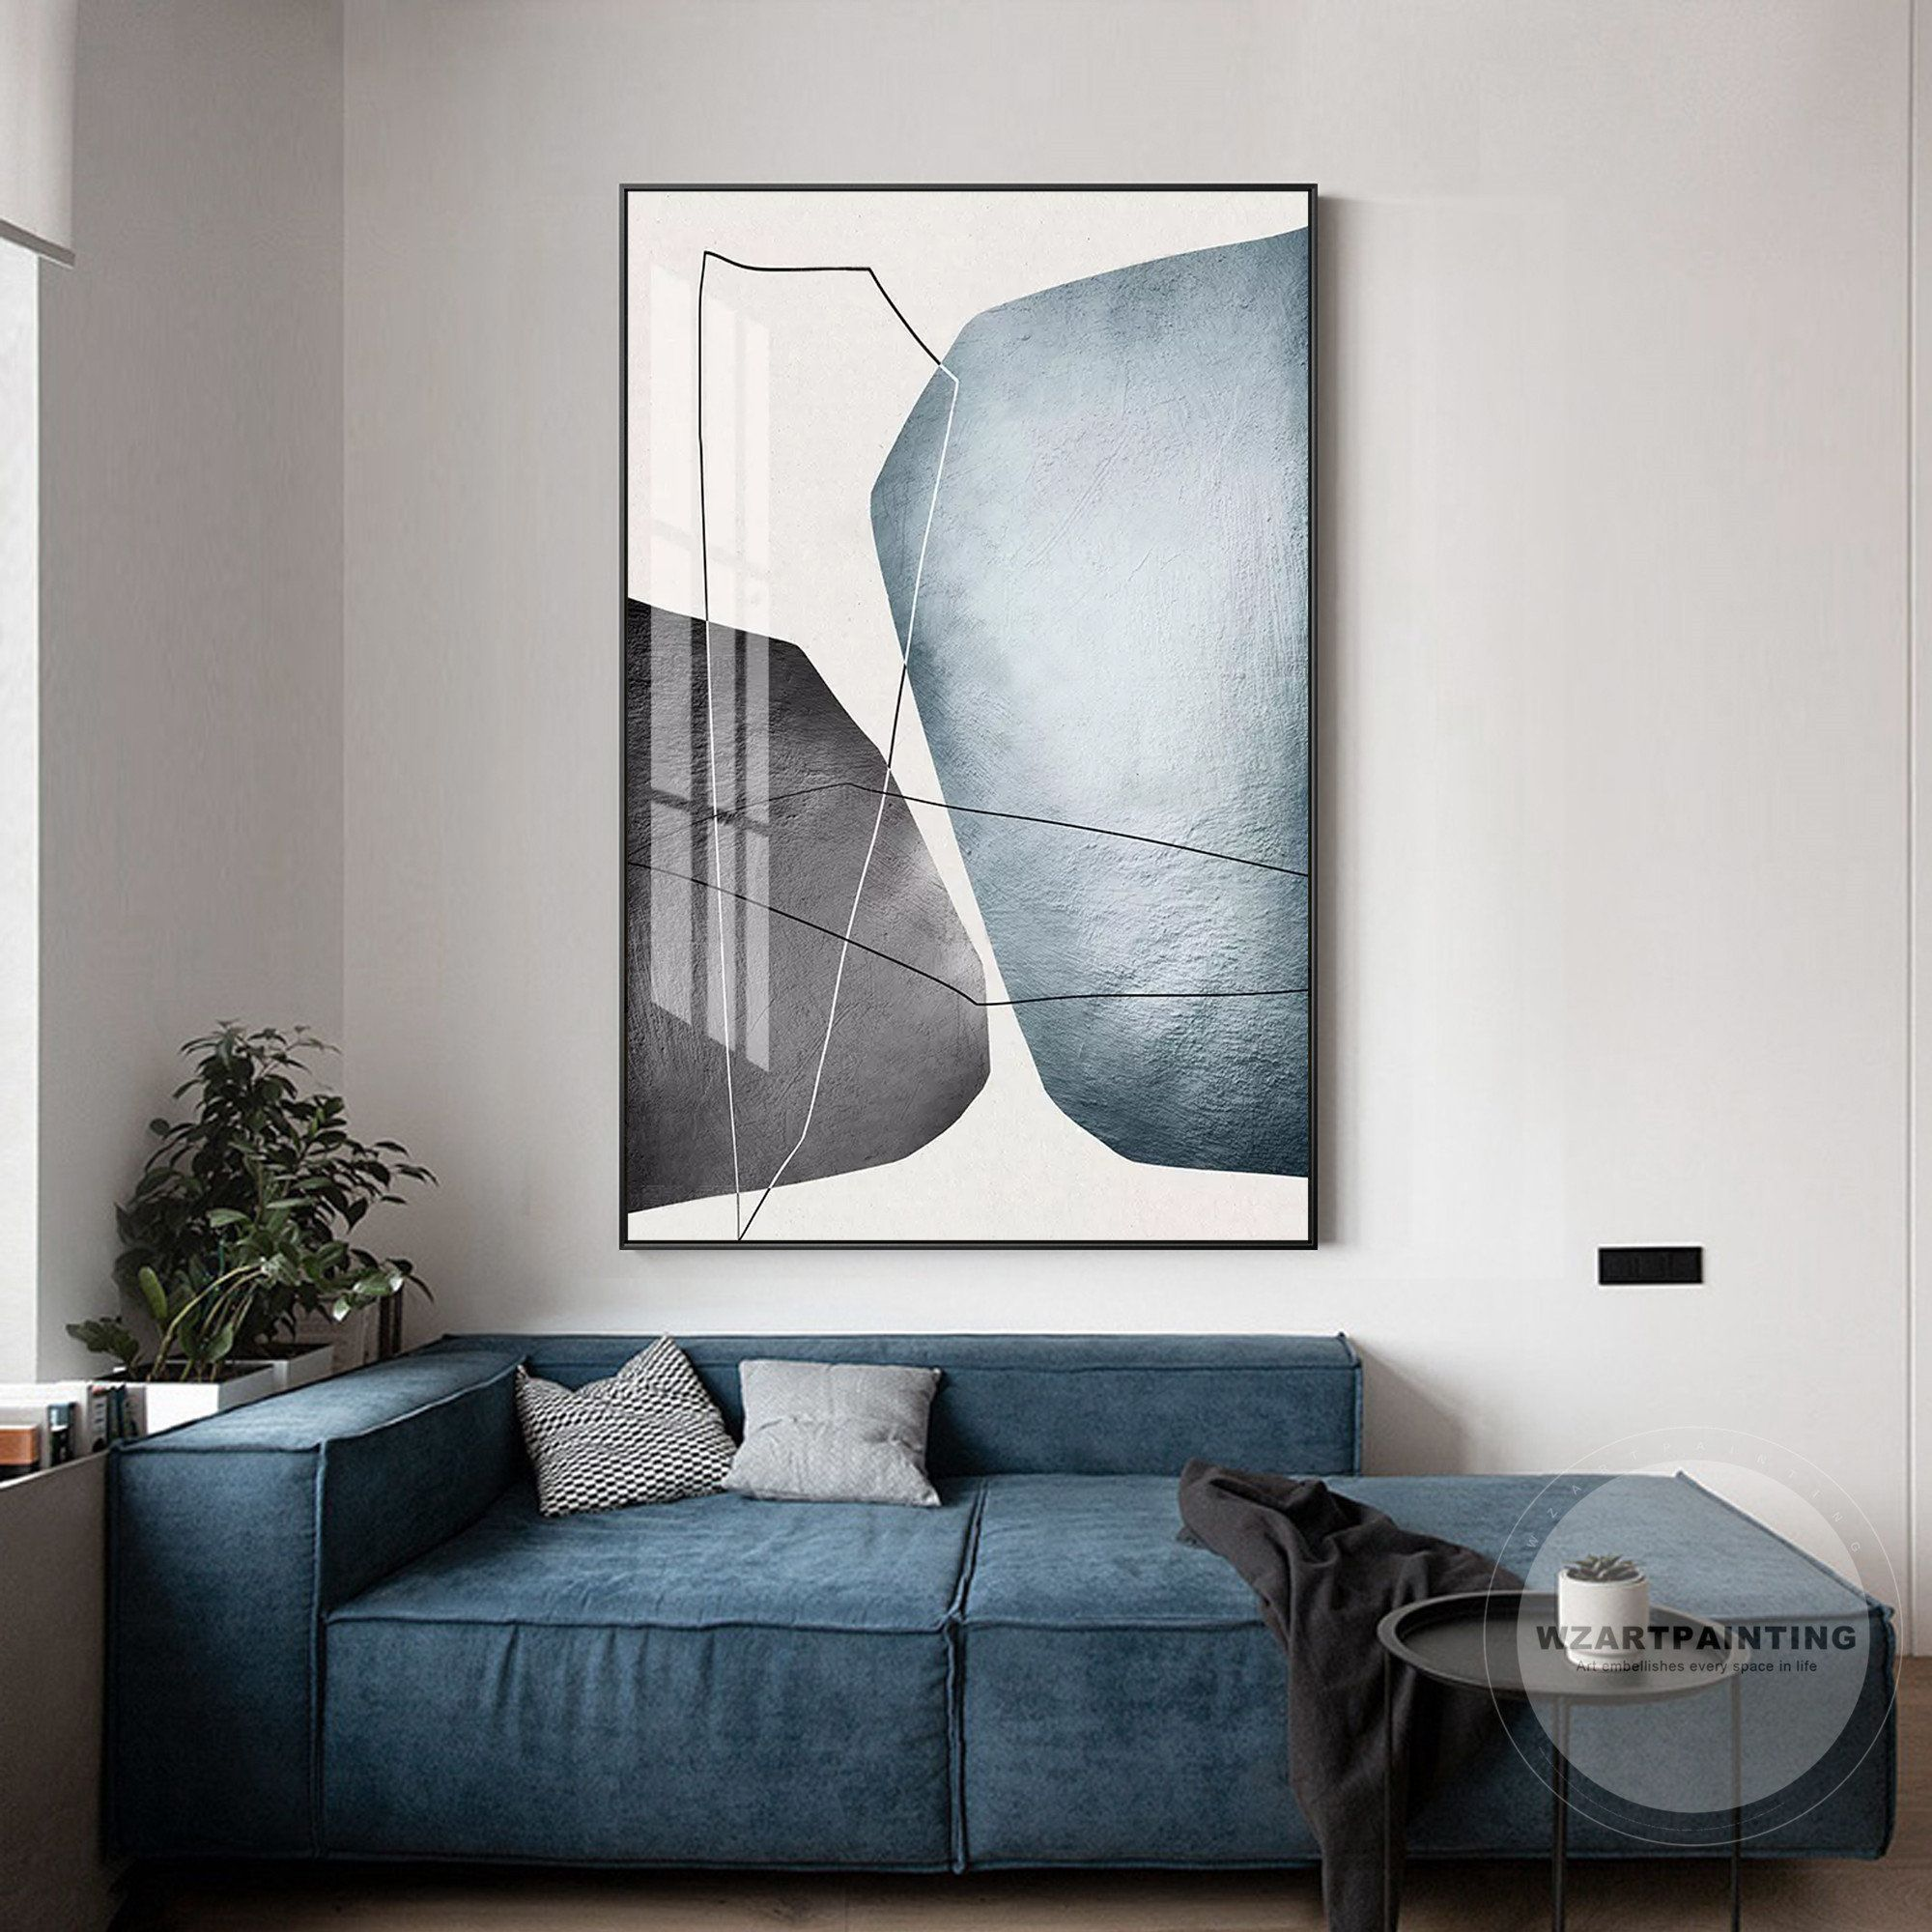 Framed Wall Art Modern Abstract Geometric Grey Blue White Line Etsy In 2020 Large Framed Wall Art Frames On Wall Wall Art Pictures